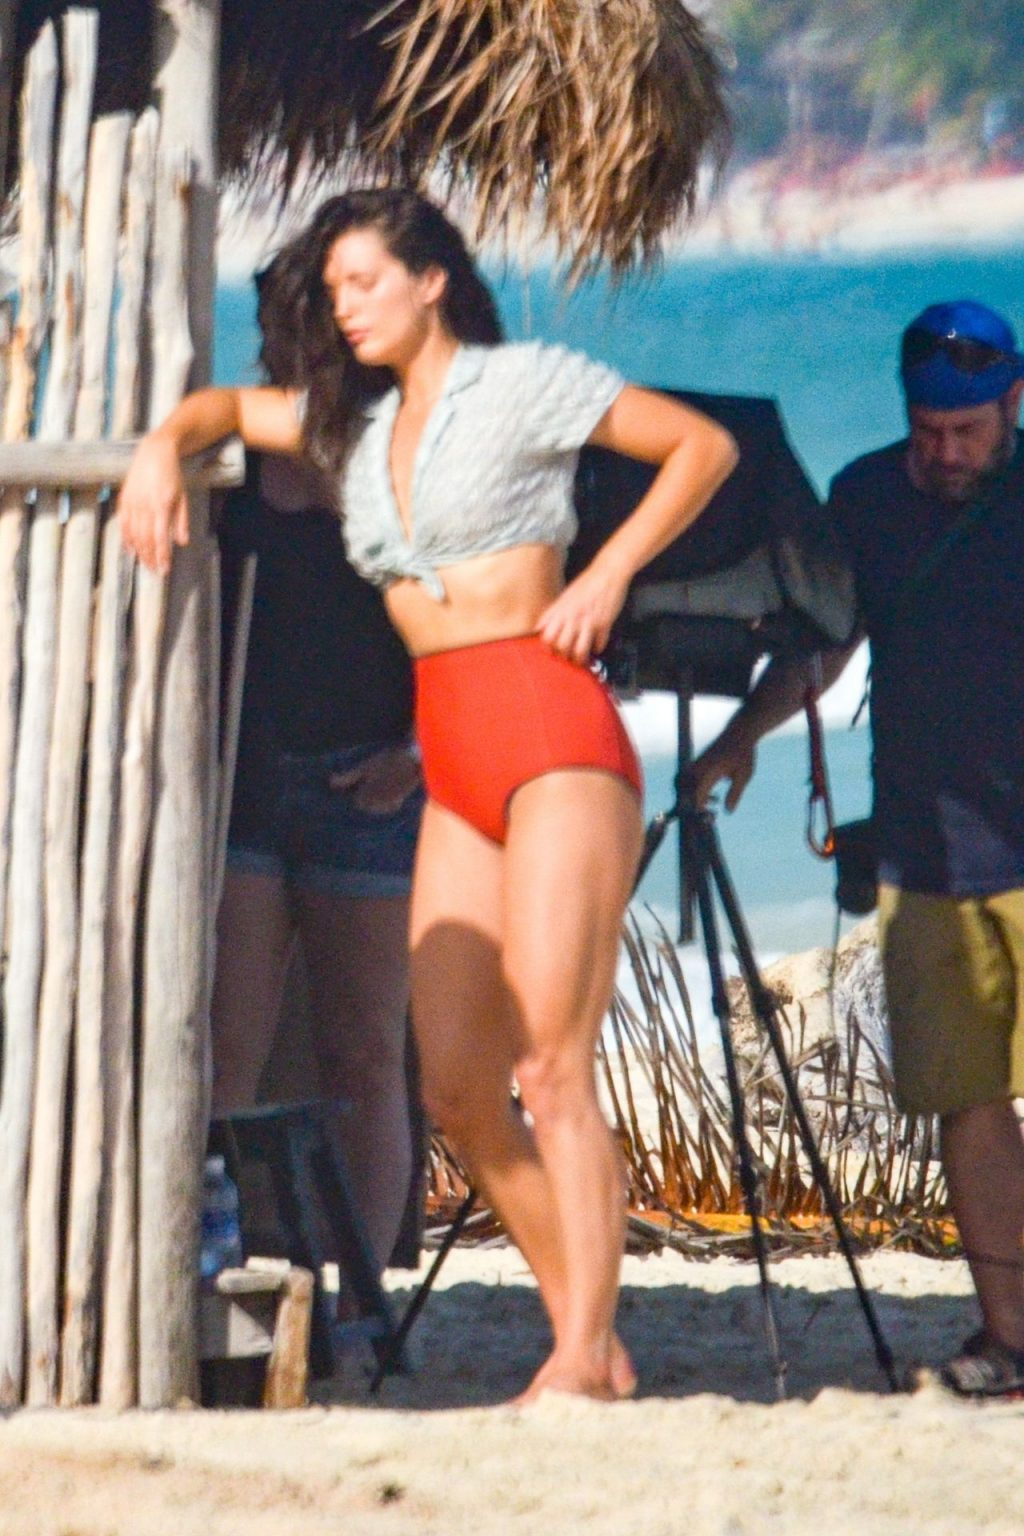 Emily DiDonato Goes Topless for a Beachside Shoot in Tulum